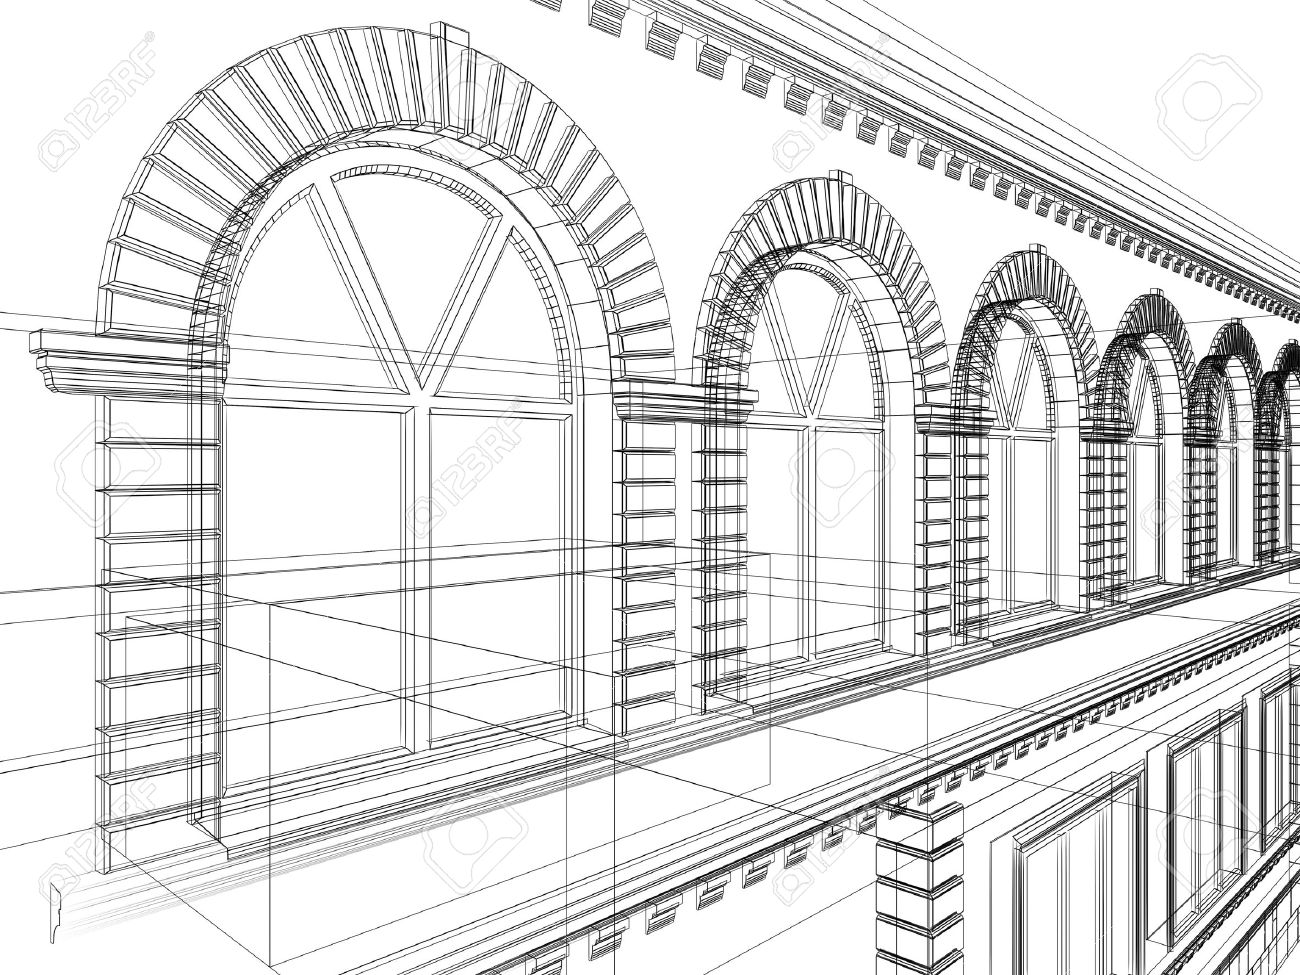 1300x975 Sketch Of House. Architectural 3d Illustration Stock Photo